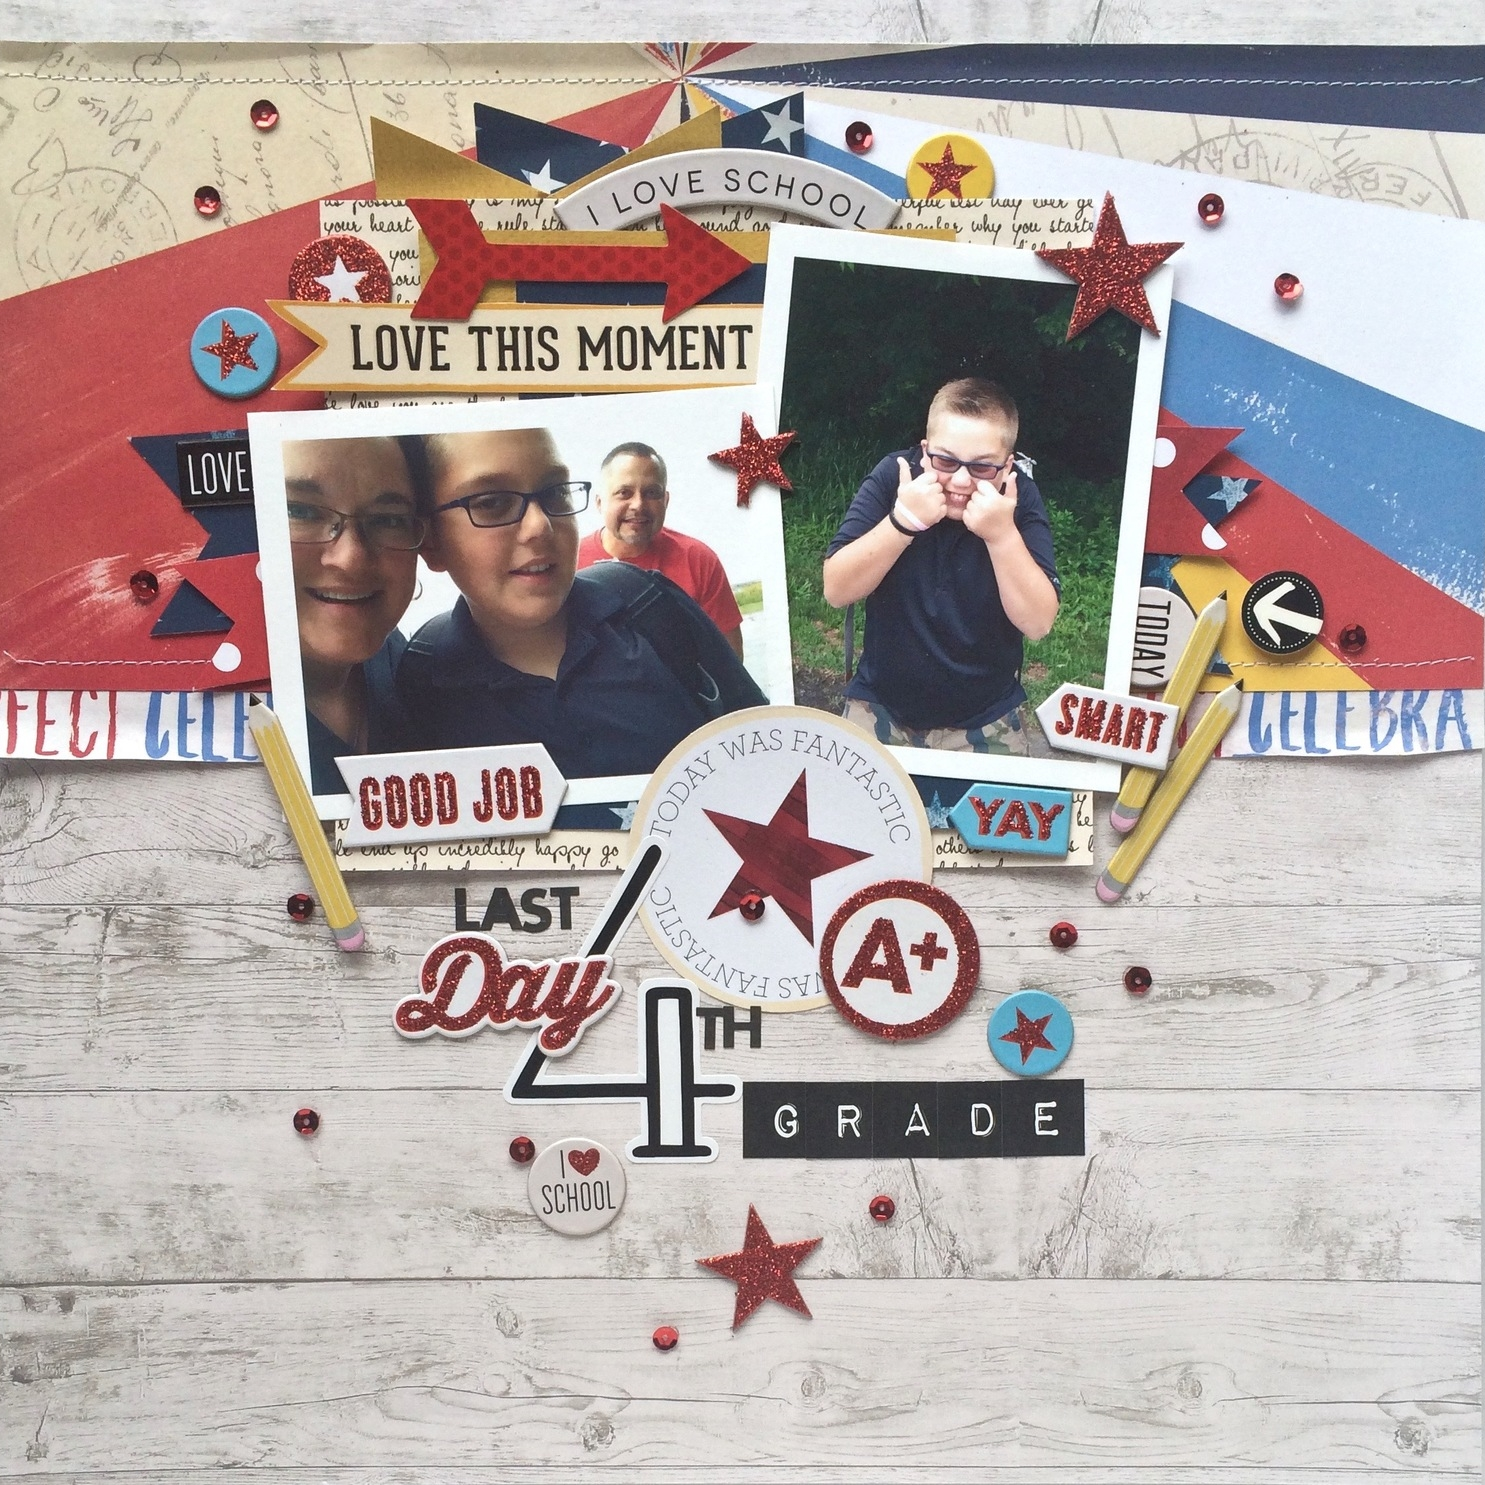 'Last Day of 4th Grade' scrapbook page